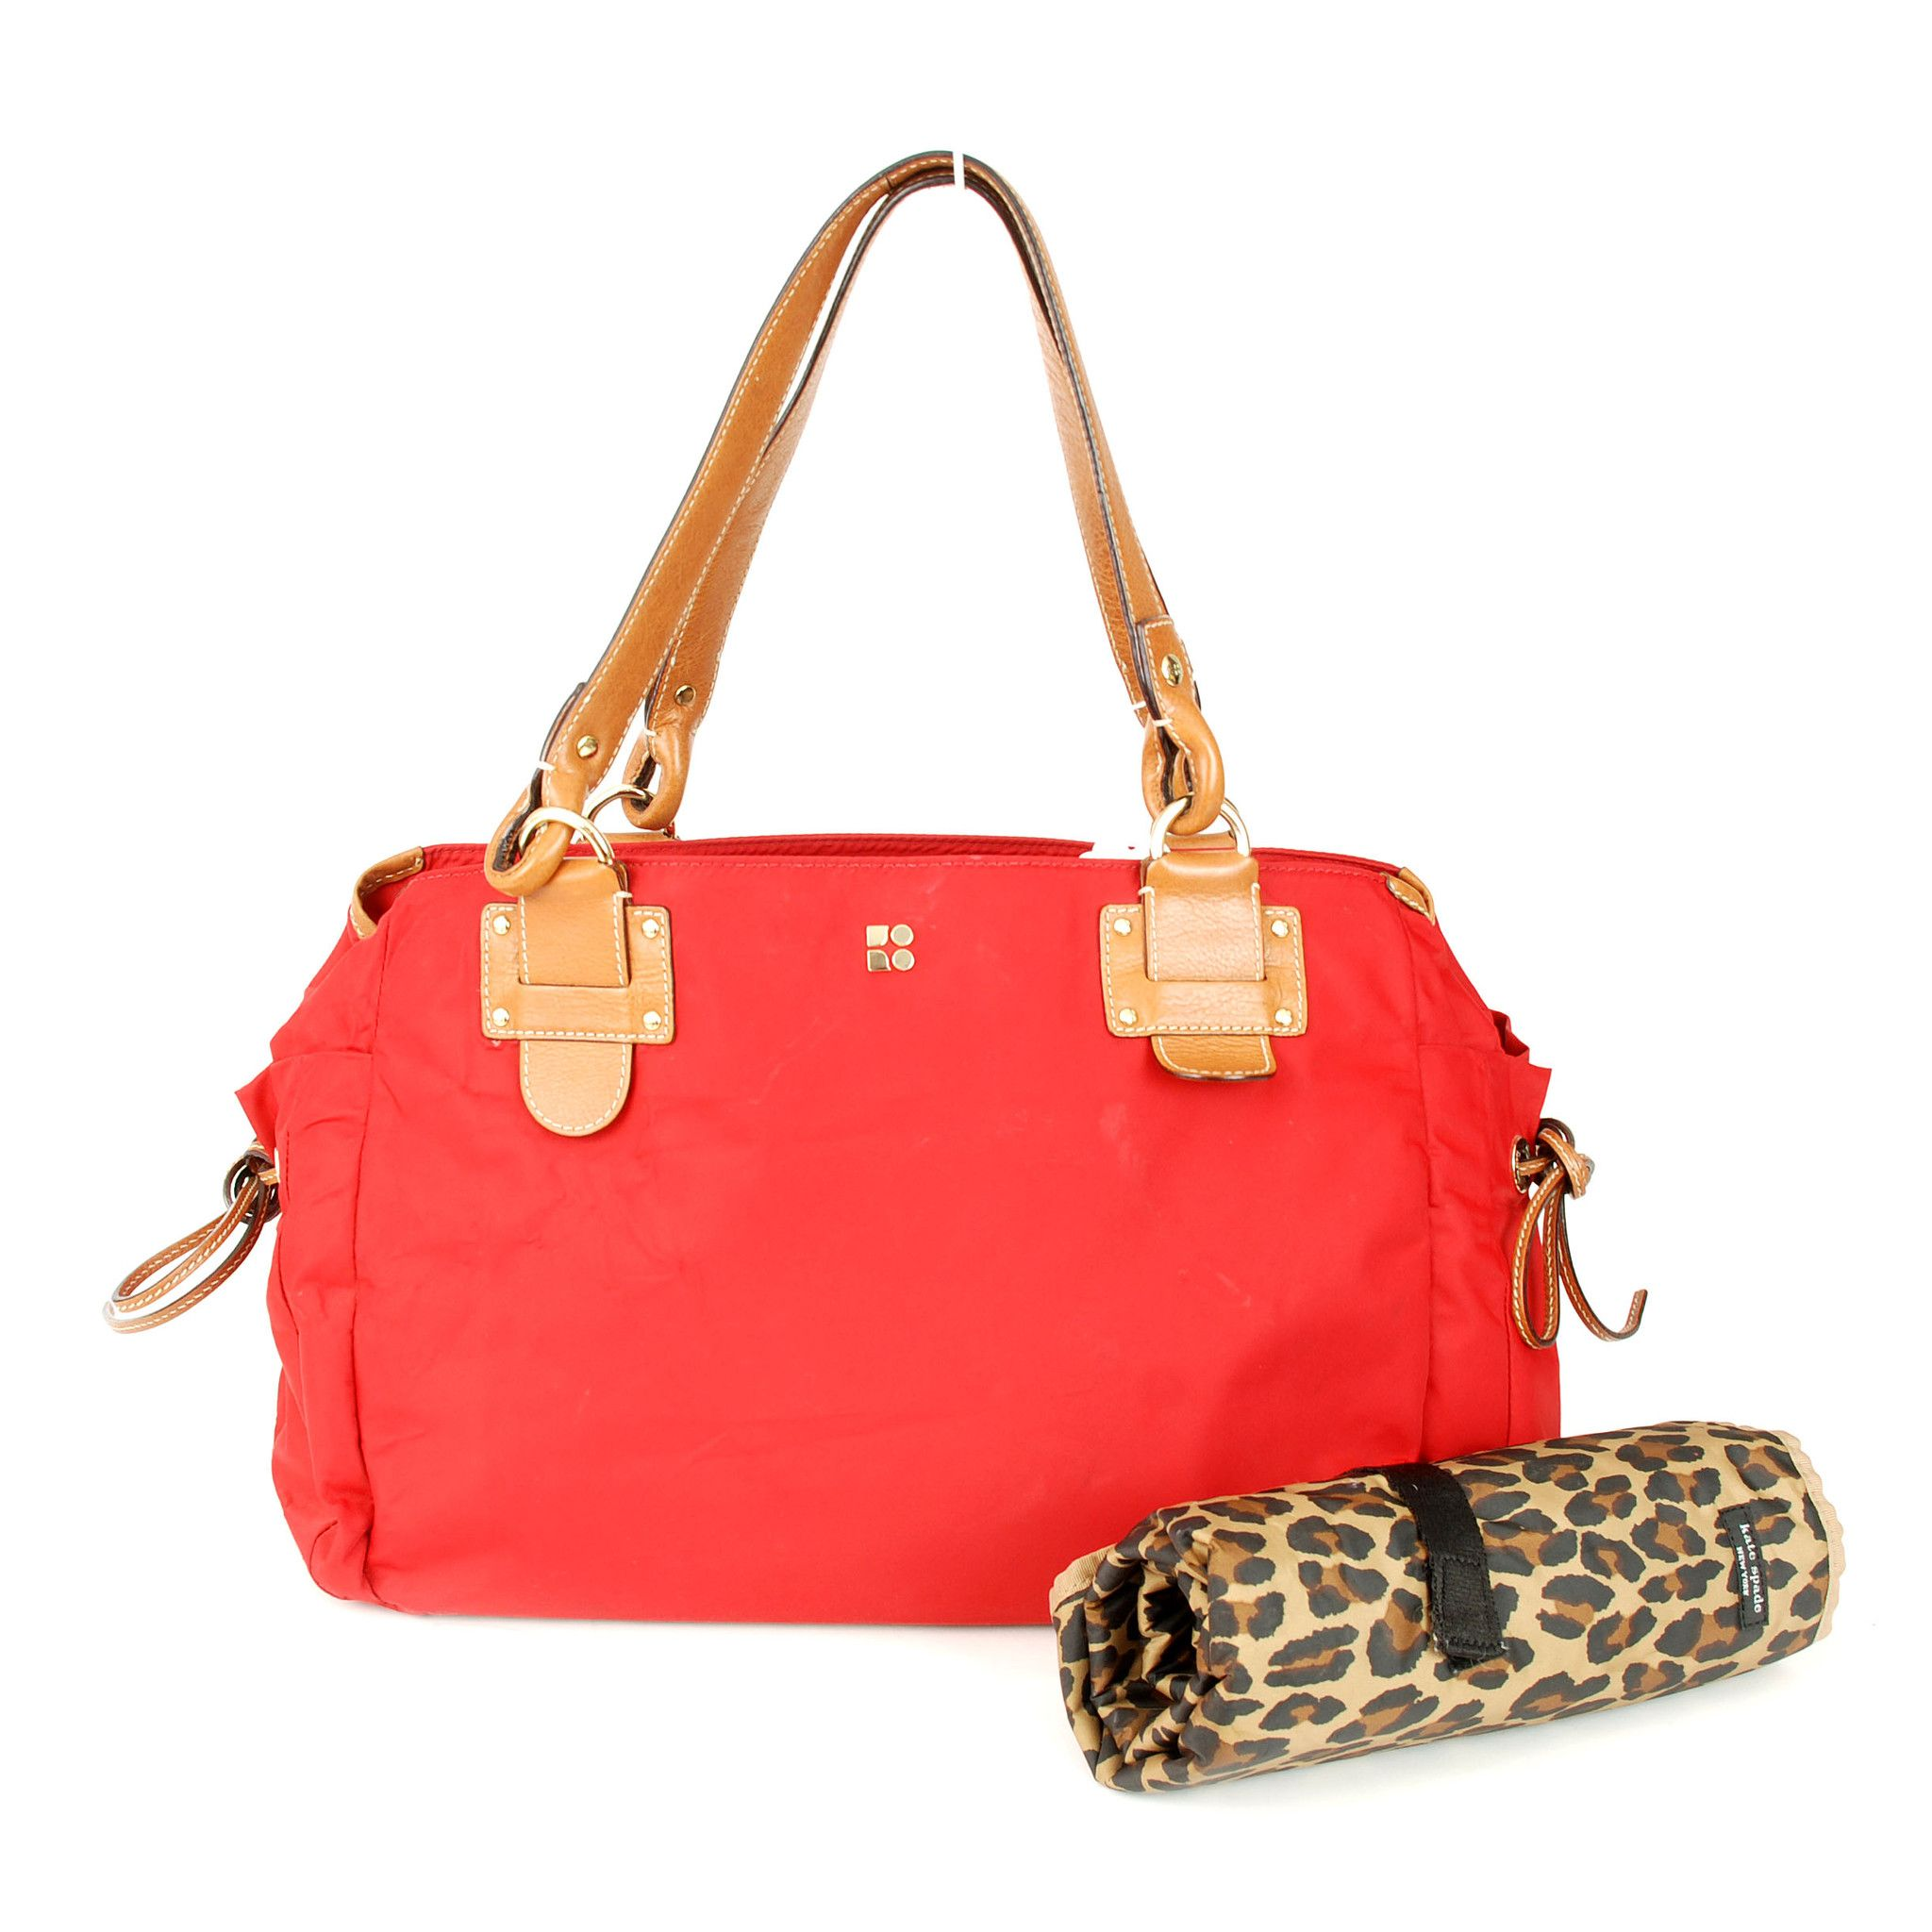 Kate Spade Diaper Bag | Preowned Designer Fashion Consignment | Ottawa Online